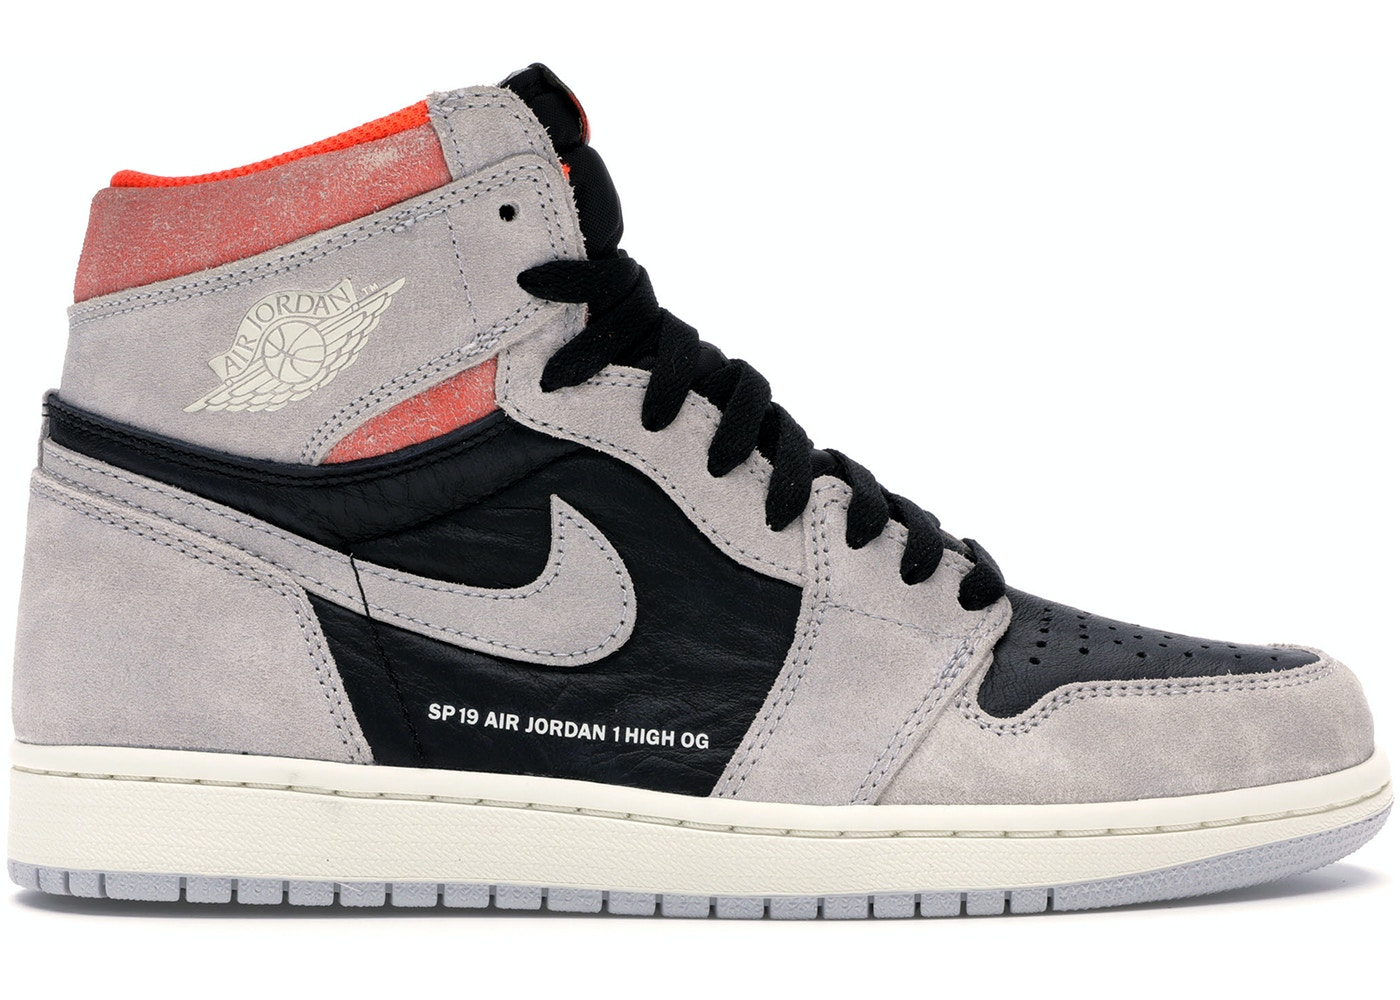 buy online e05ca 28e64 Buy Air Jordan 1 Shoes   Deadstock Sneakers